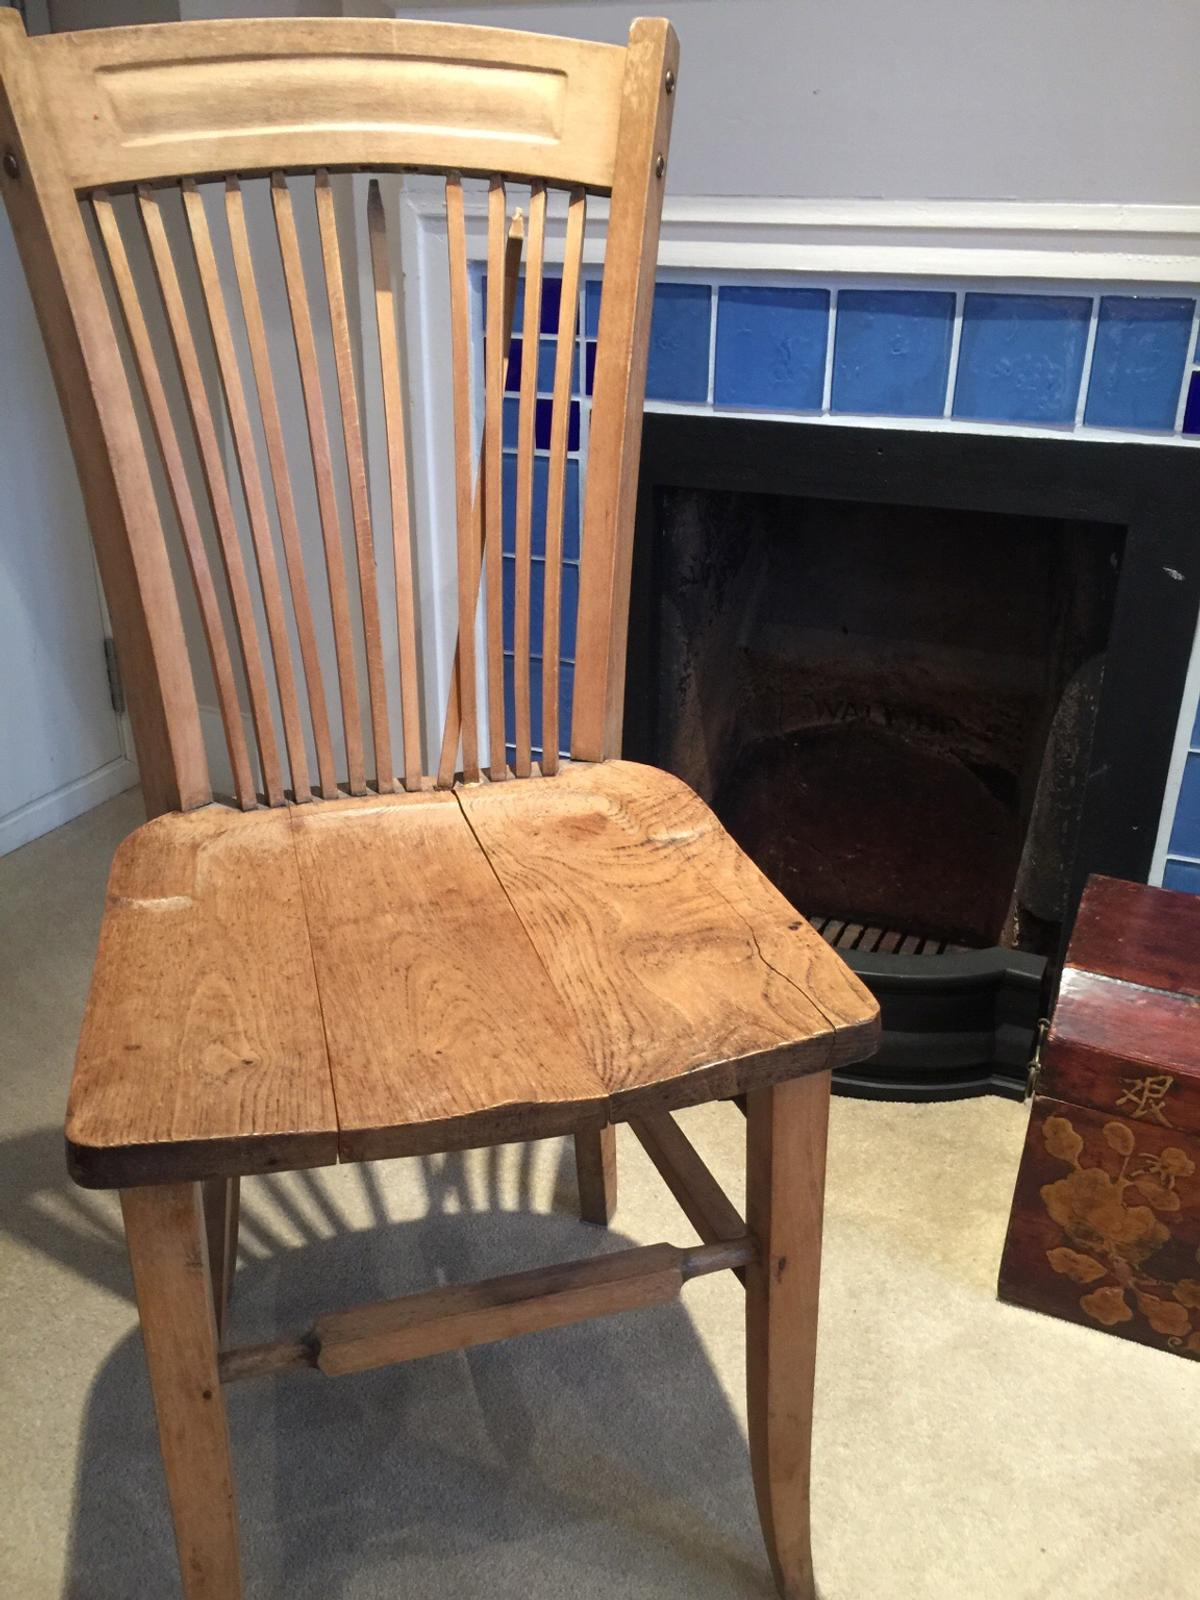 Antique Wooden Chair In N8 London For 30 00 For Sale Shpock